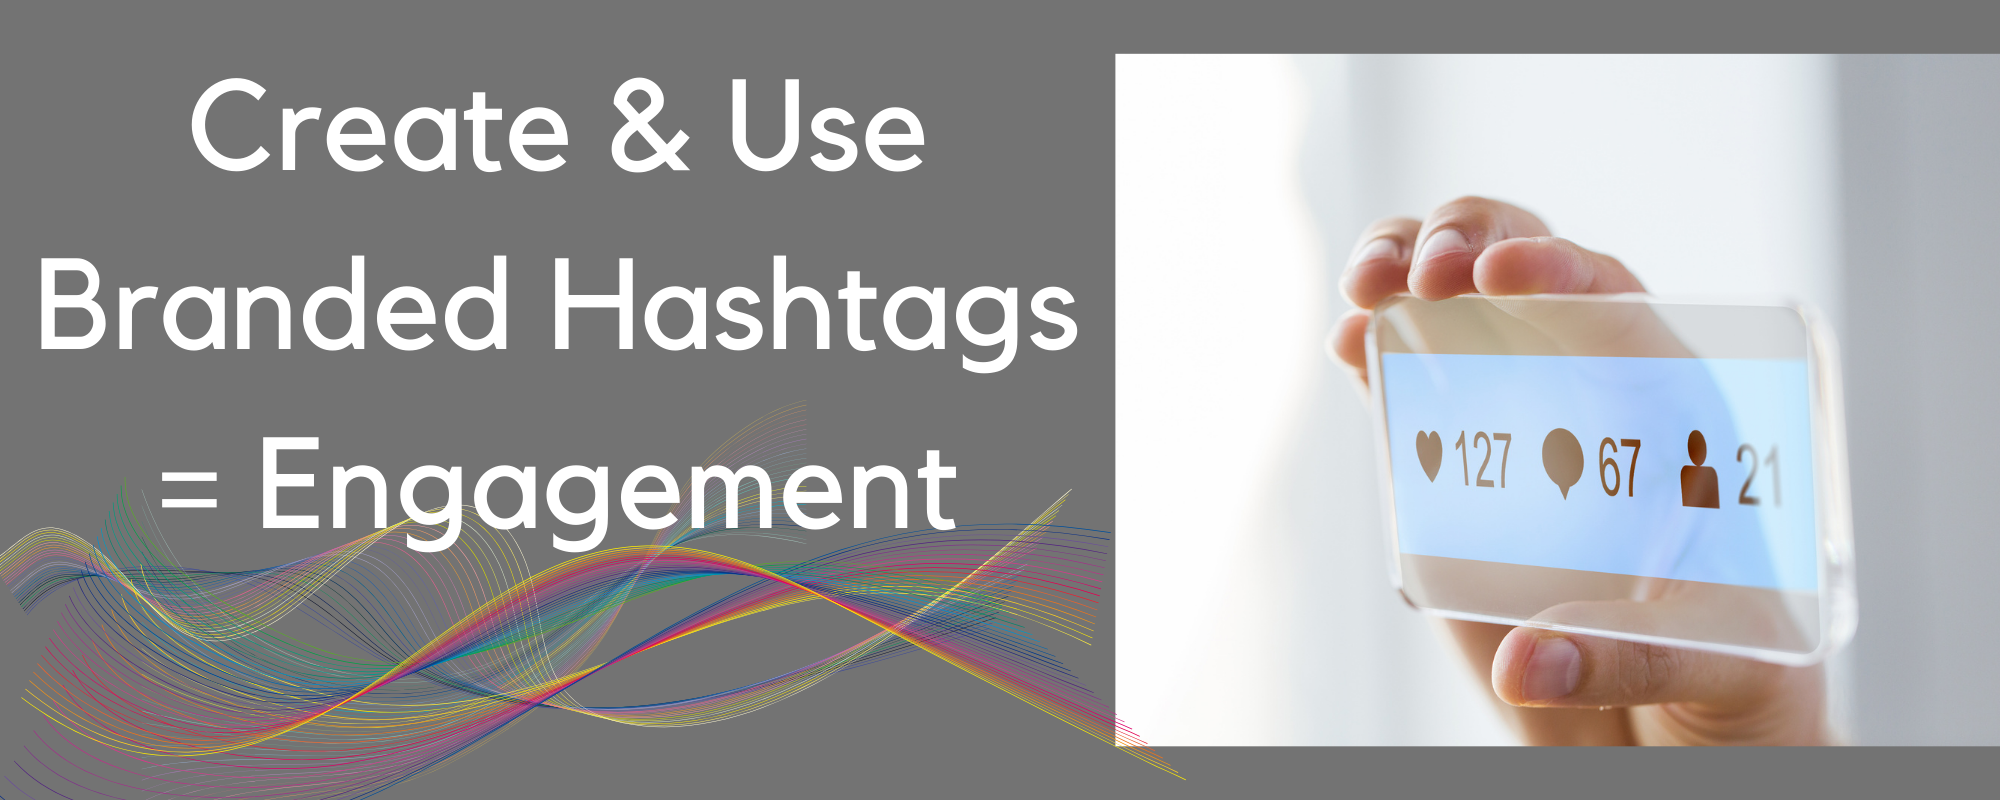 Use Branded Hashtags for Engagement